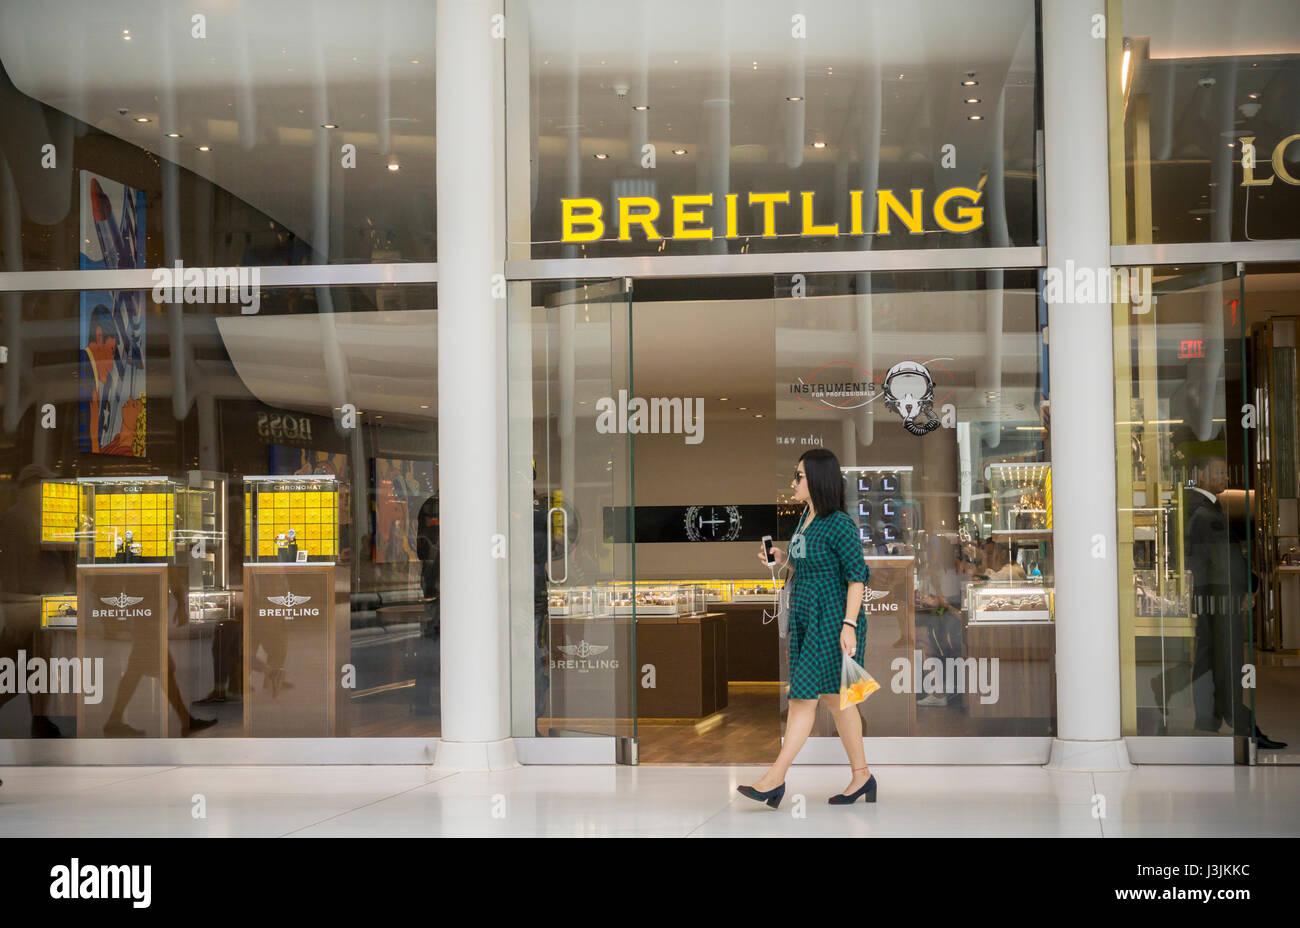 People walk past a Breitling retail store in New York on Saturday, April 29, 2017. CVC Capital Partners, a private - Stock Image